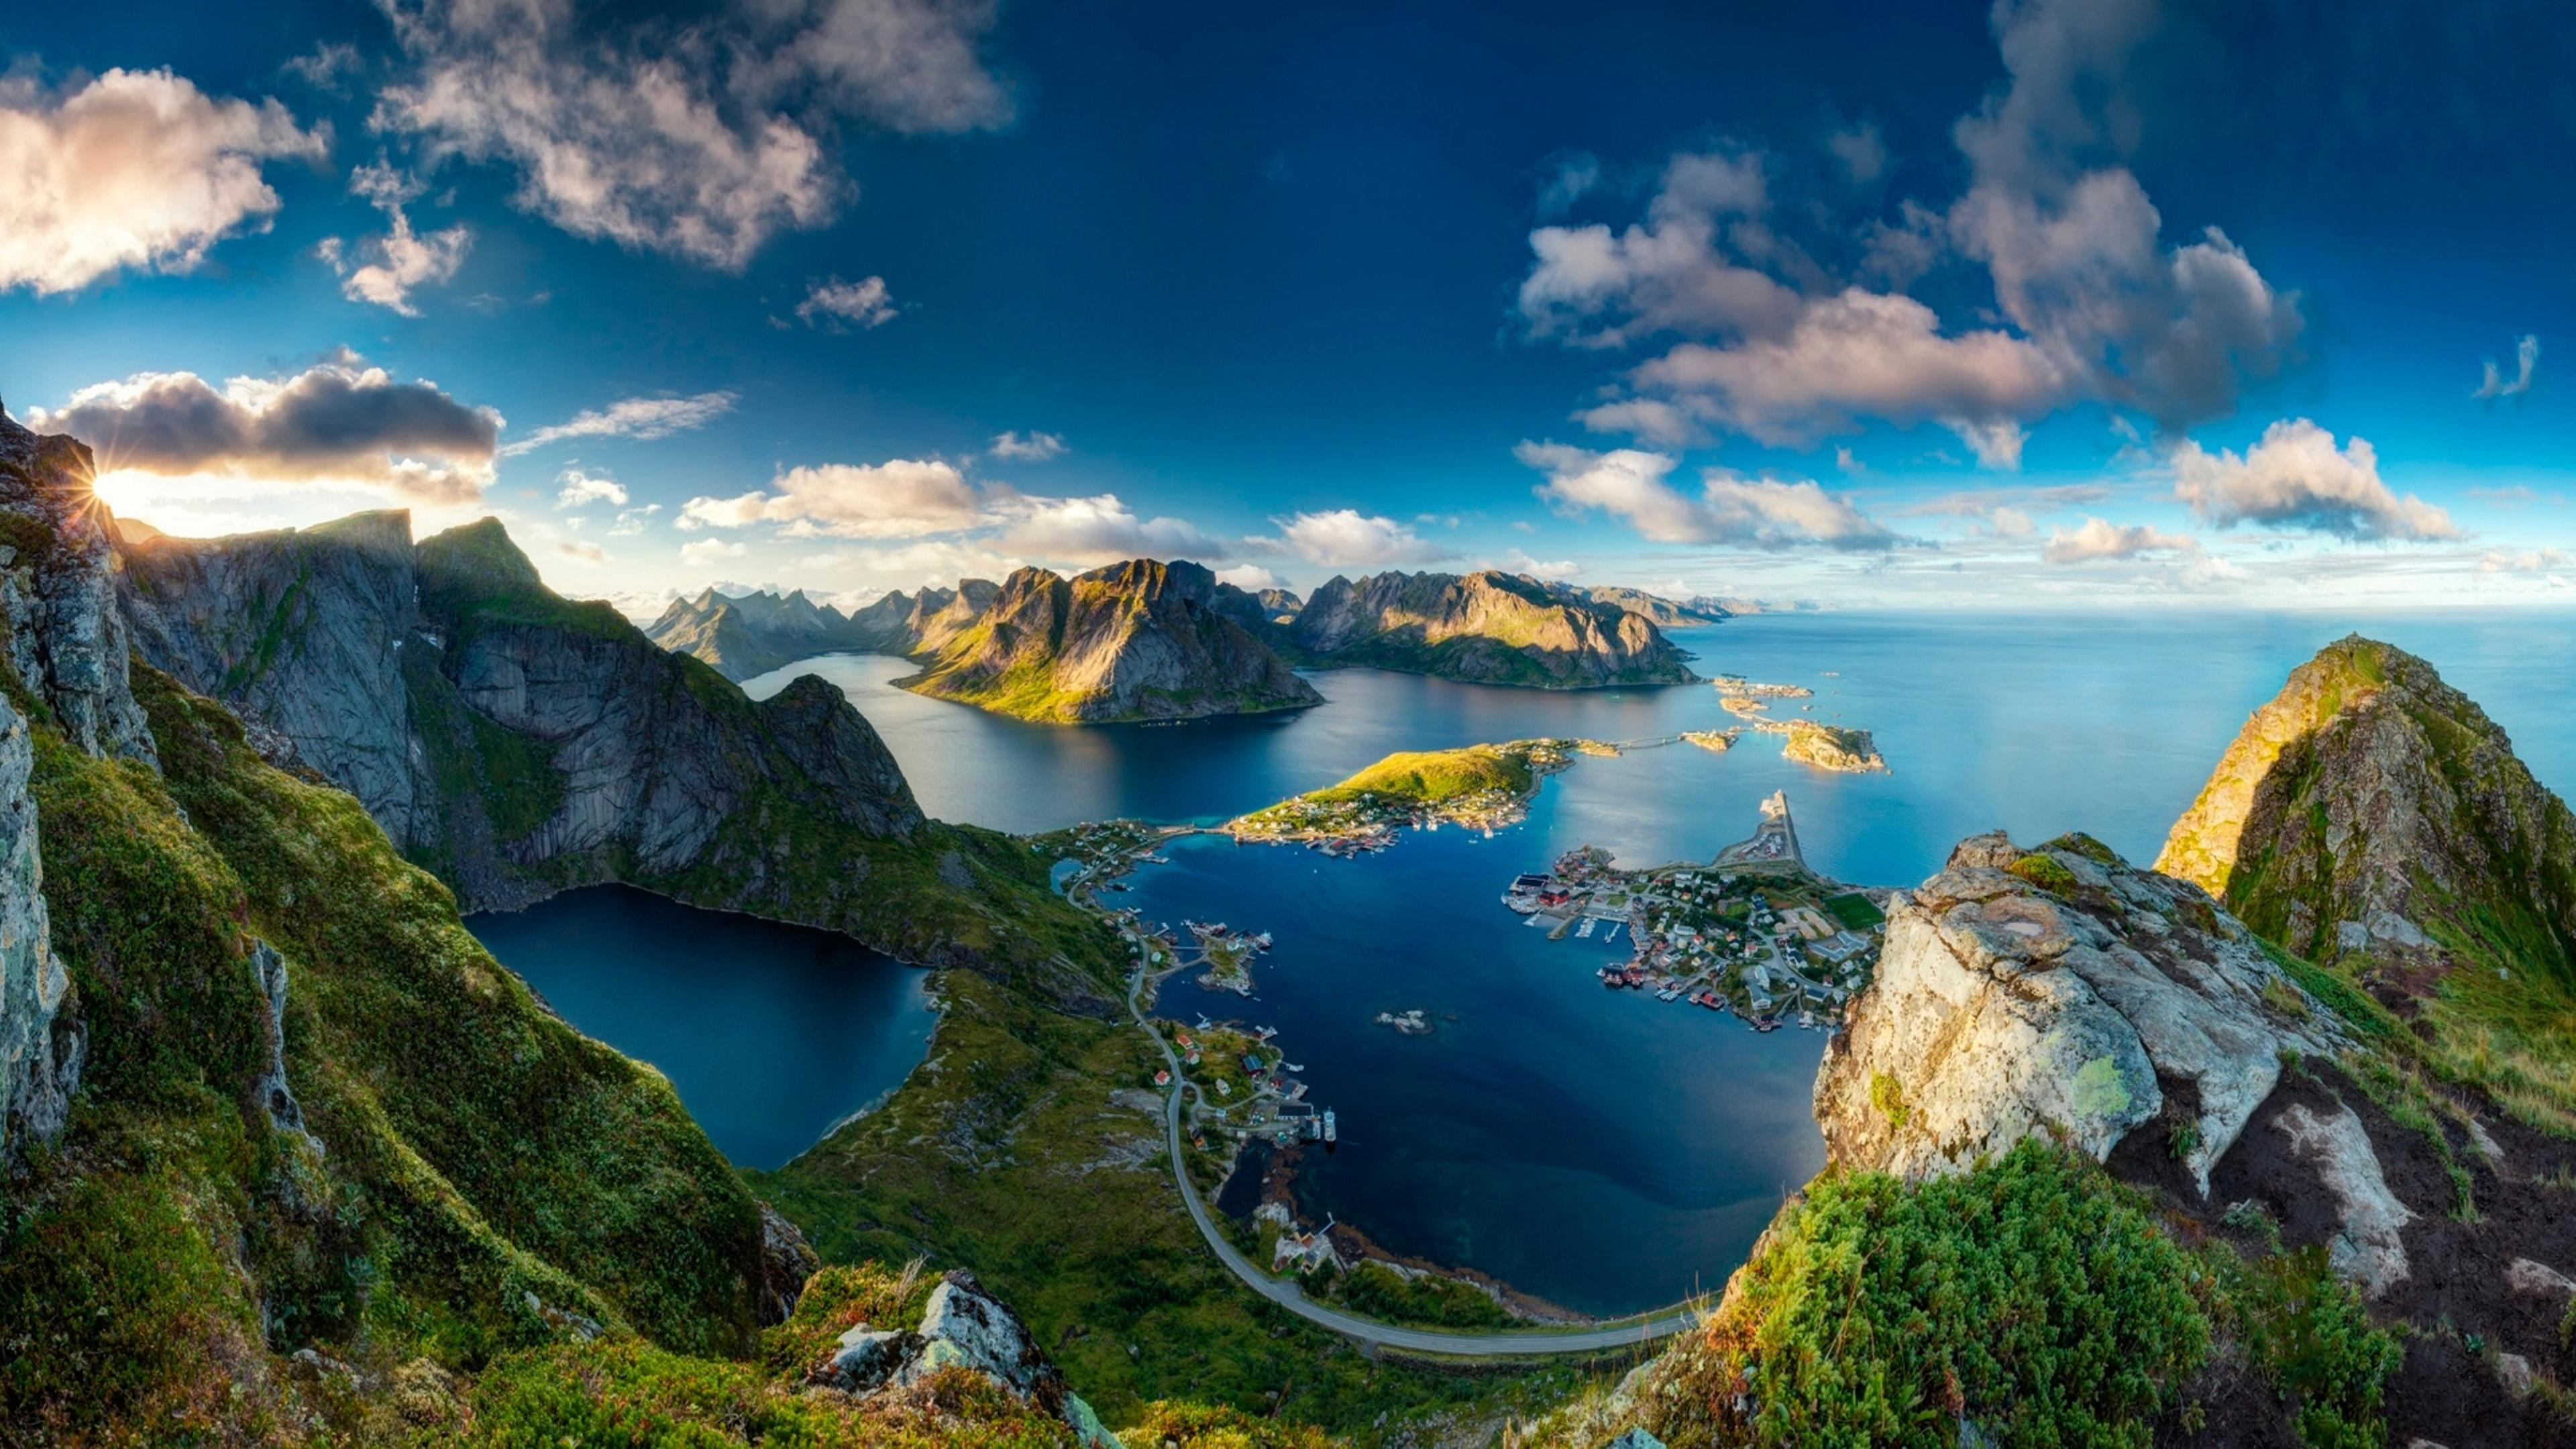 Reinebringen Norway Stunning Landscape Wallpaper